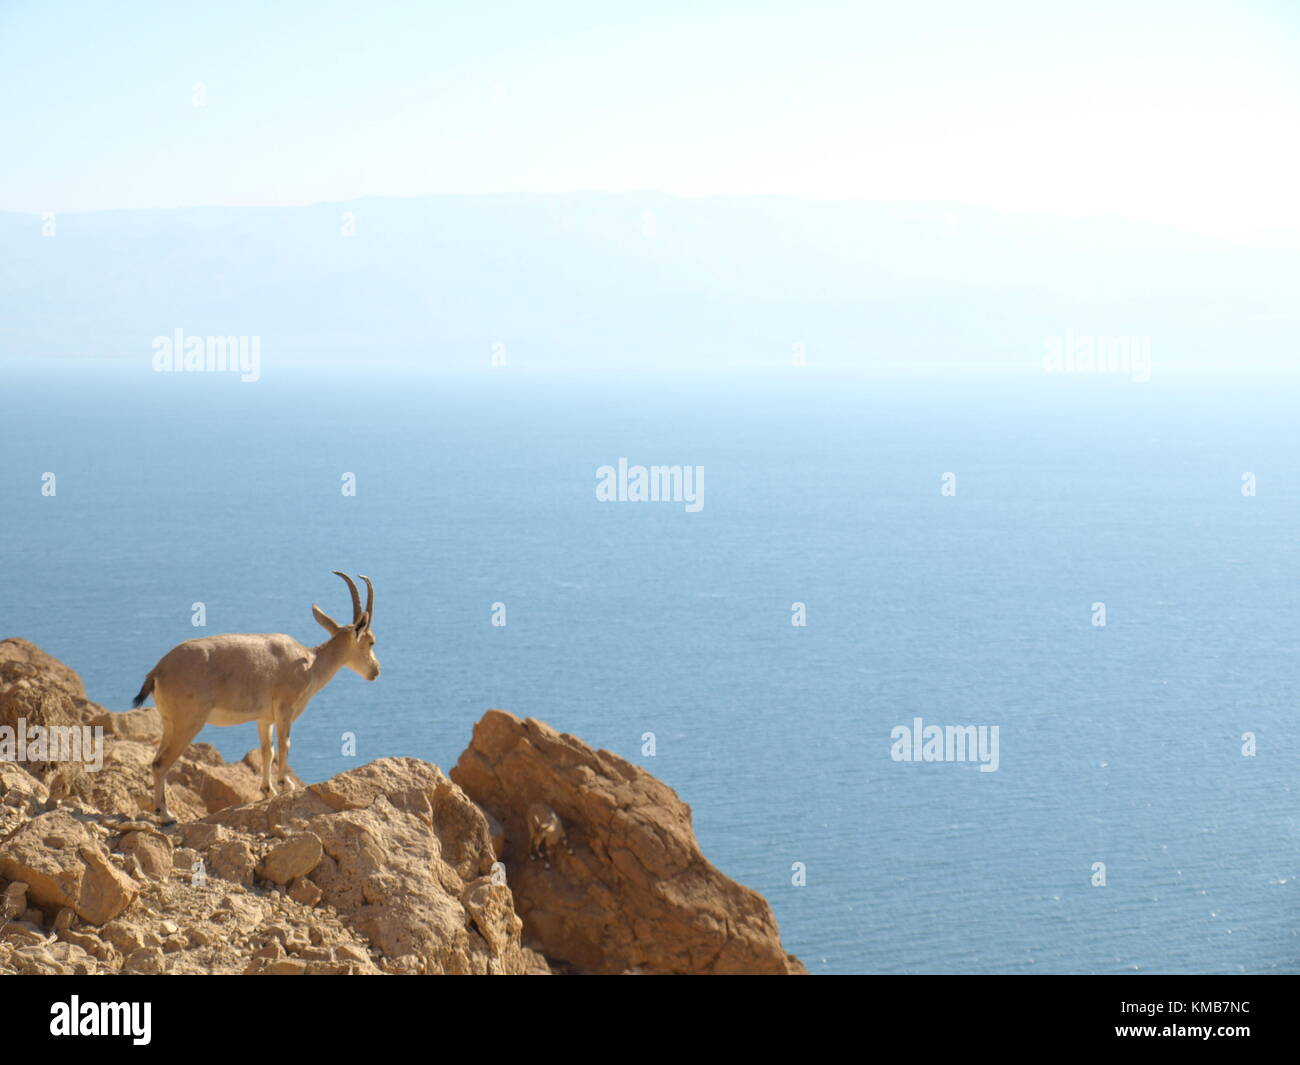 The ibex in nature standing on a cliff in the dead sea Stock Photo